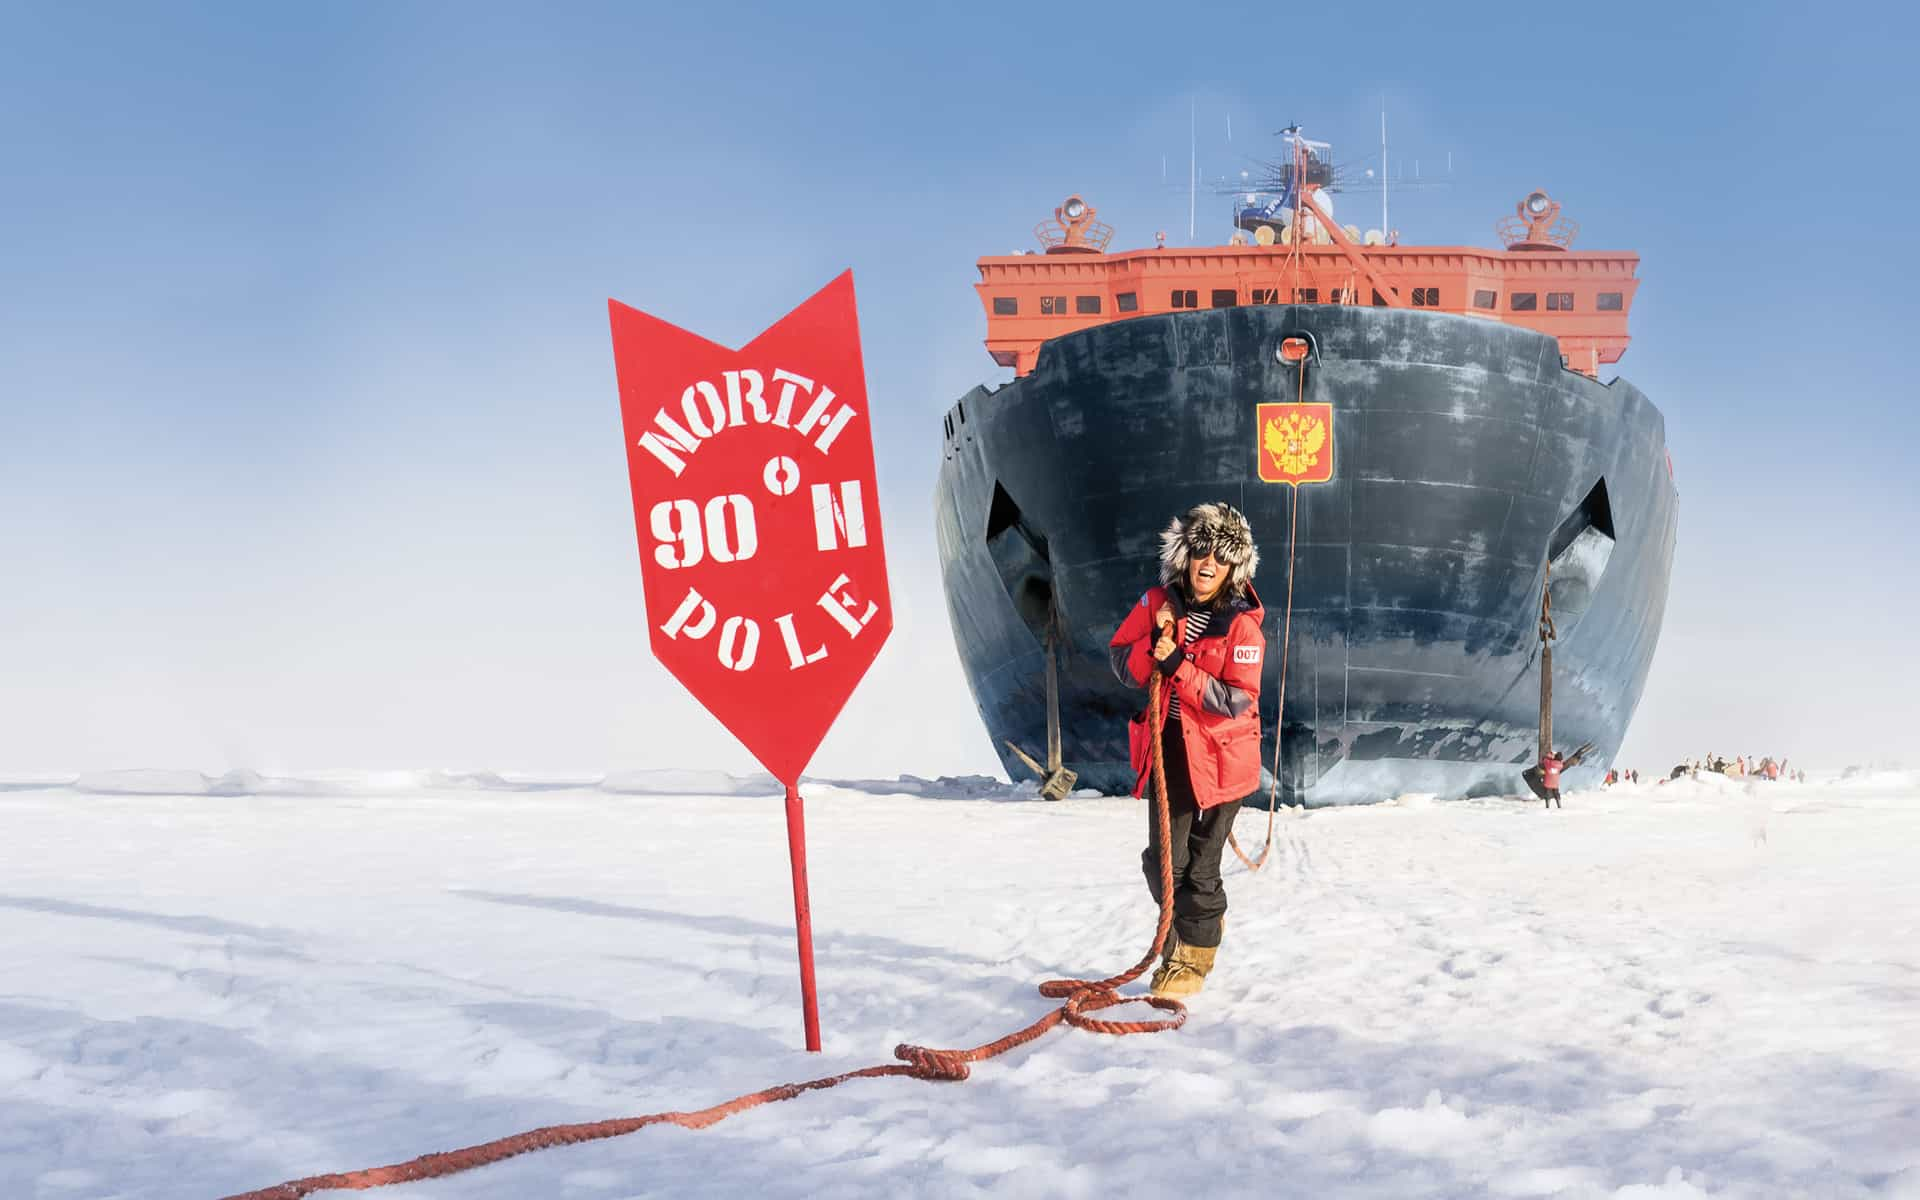 New Pioneer Travel >> North Pole: Top of the World Cruise | AdventureSmith ...